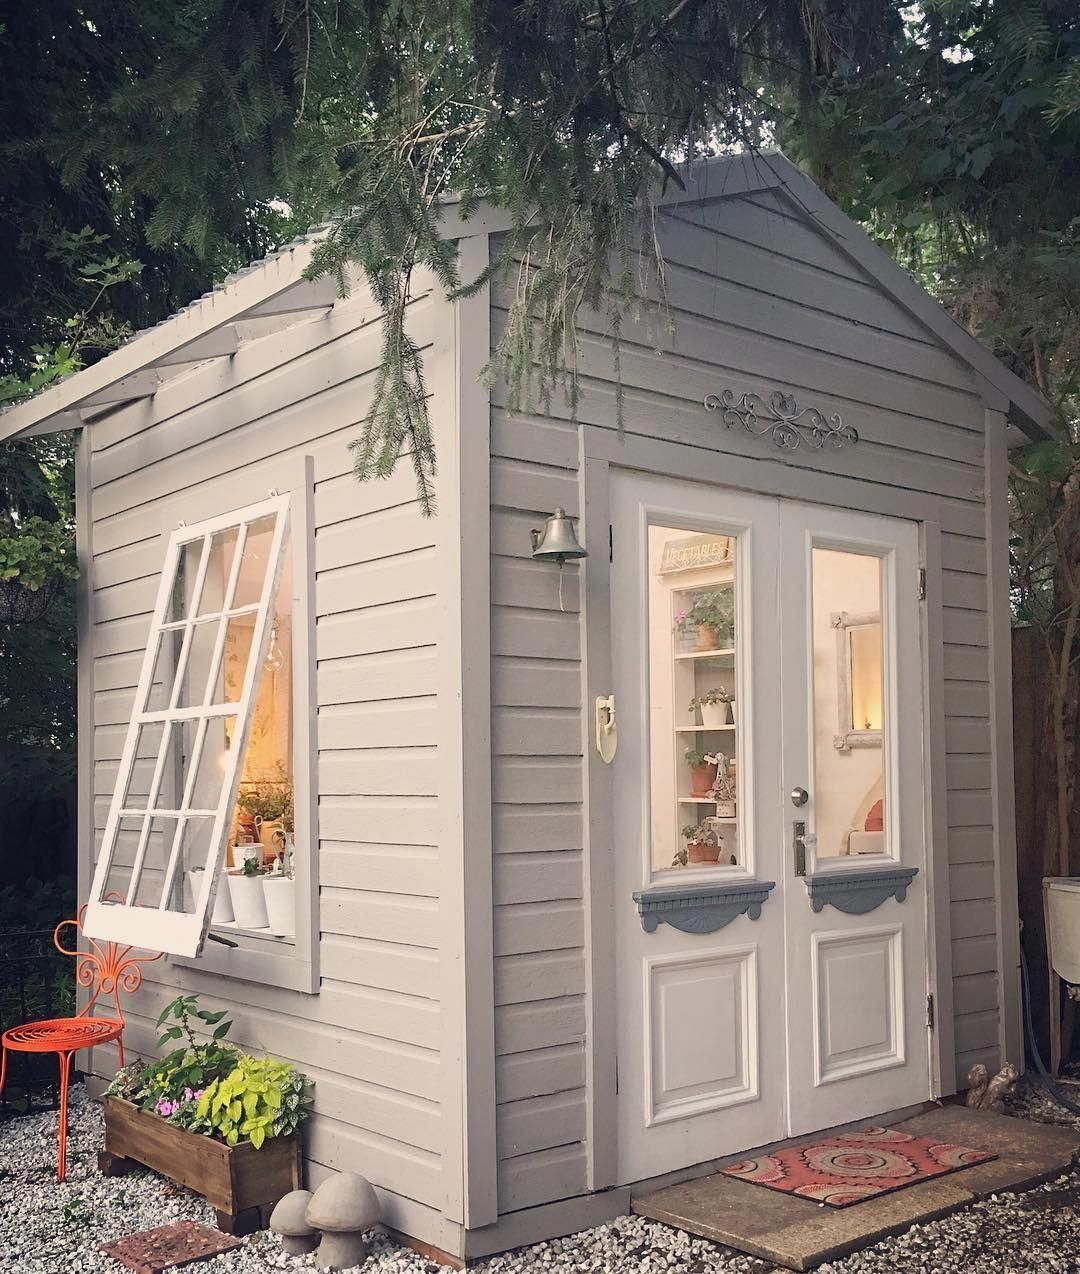 A She Shed Is The Perfect Addition To Any Size Backyard She Shed Inspiration Popsugar Home Photo 1 Gardenshed Shed Design Shed Decor Backyard Sheds